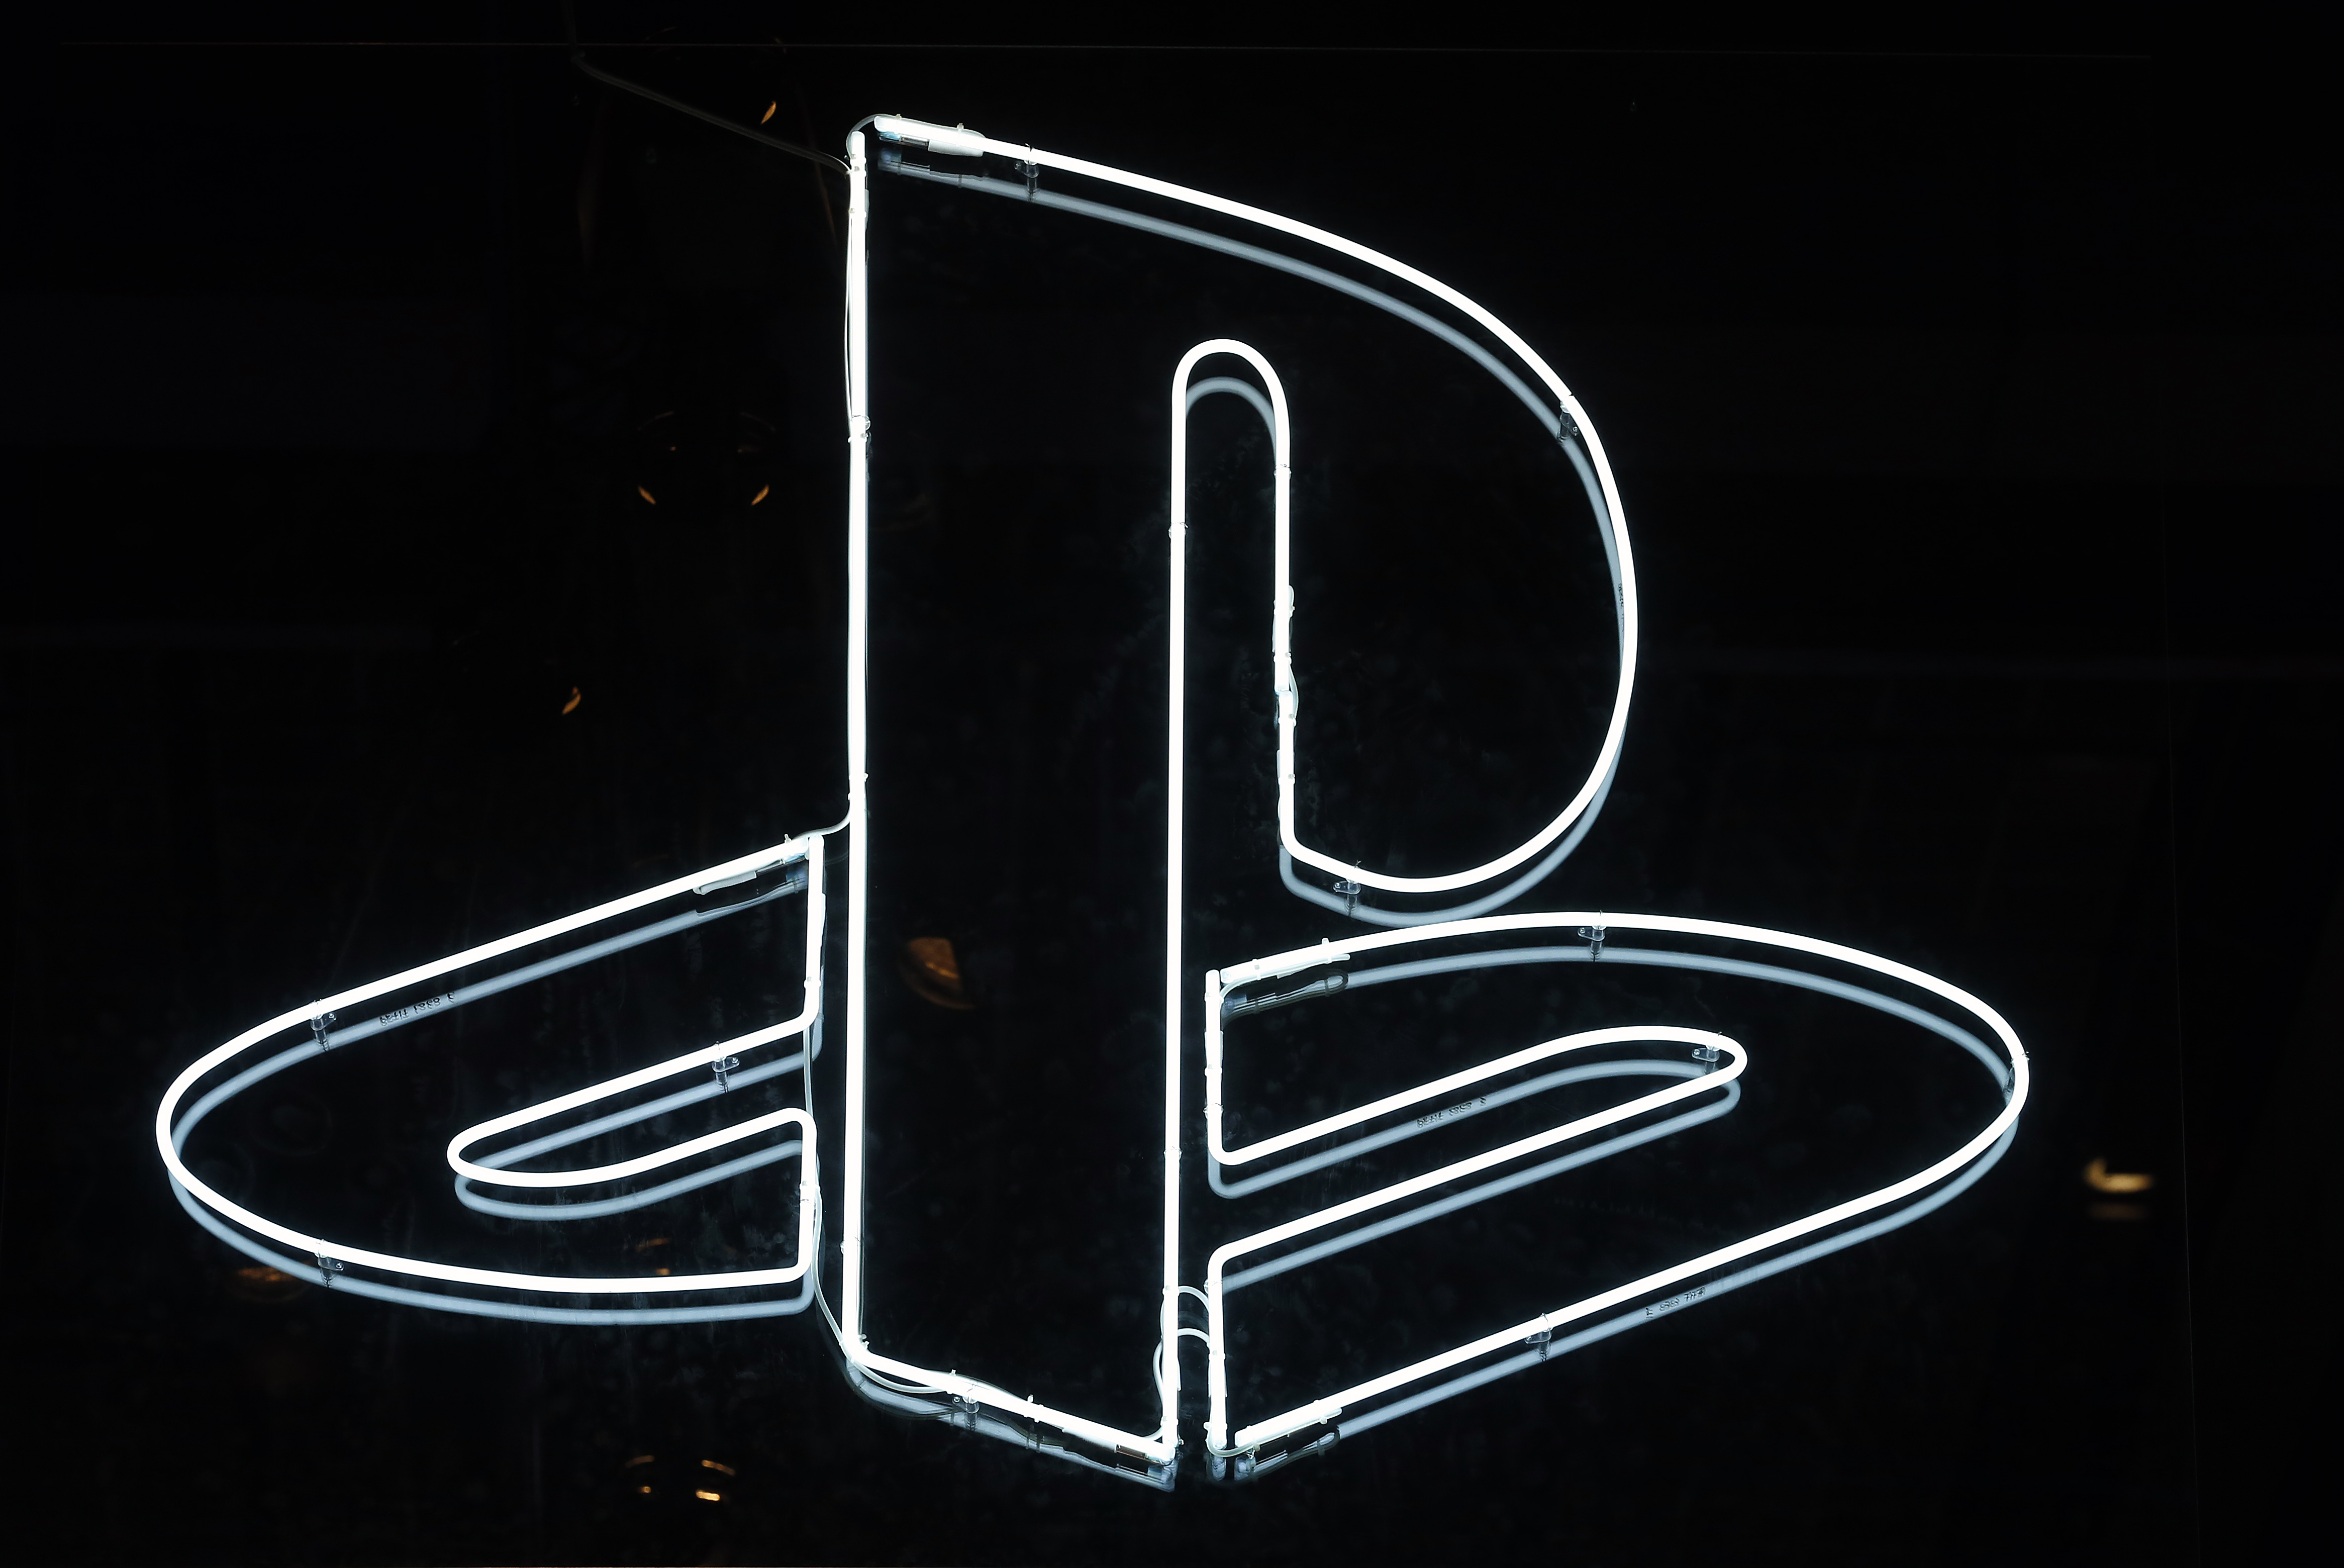 PlayStation 5: Sony outlines next-gen console plans